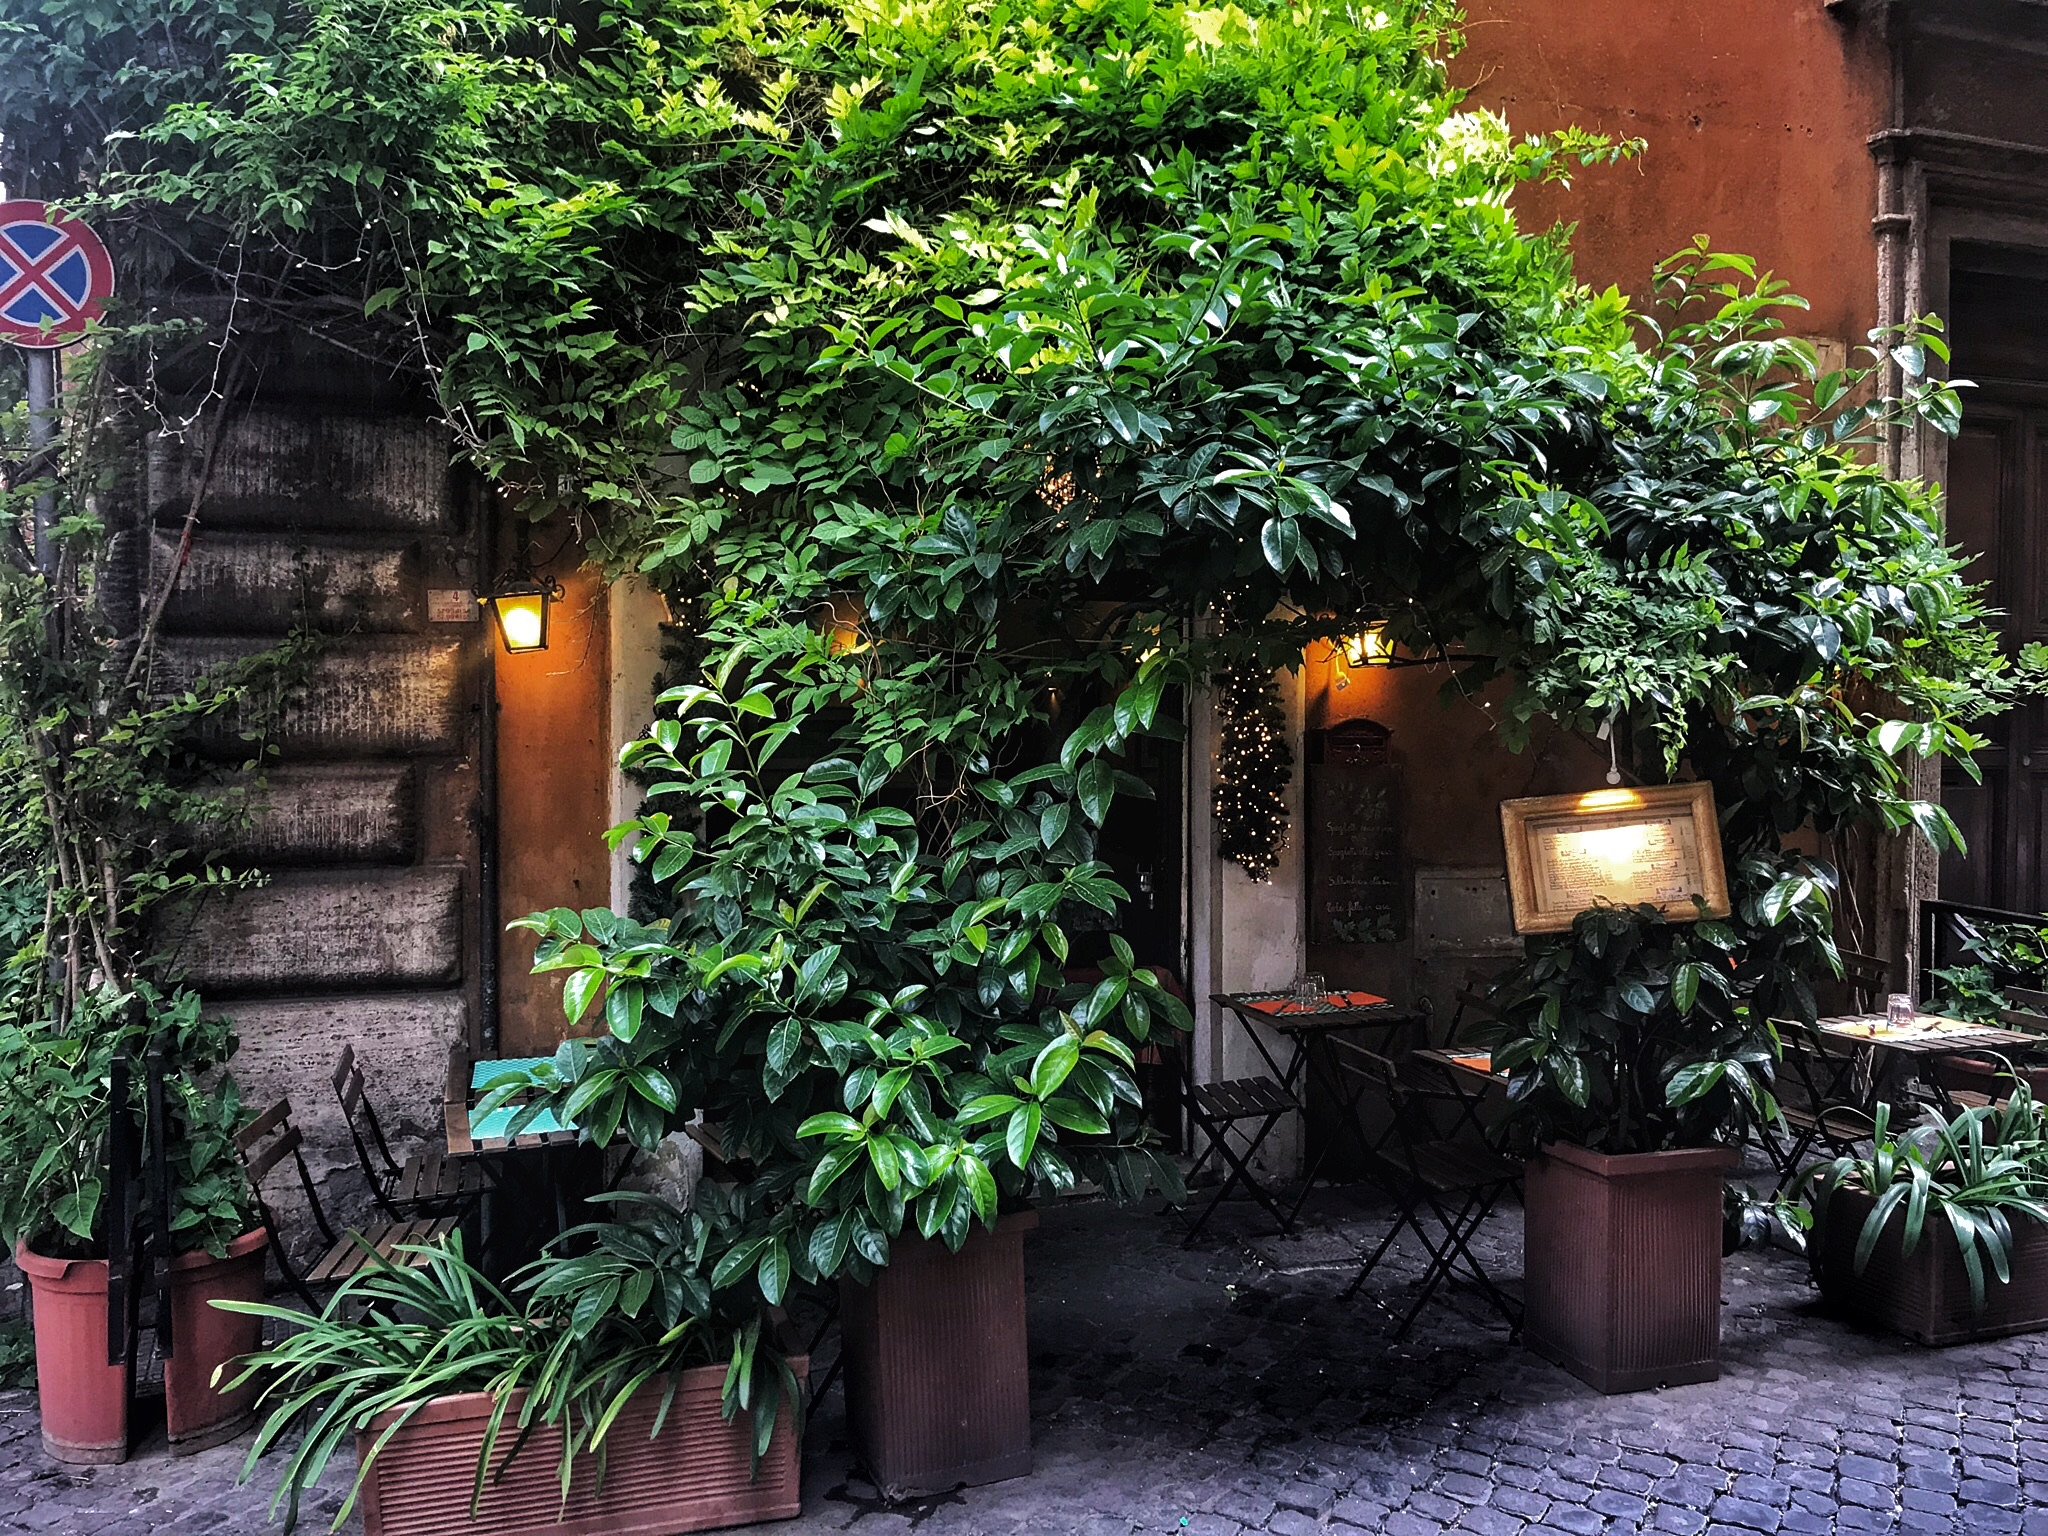 A charming little cafe on a charming little street in Rome.